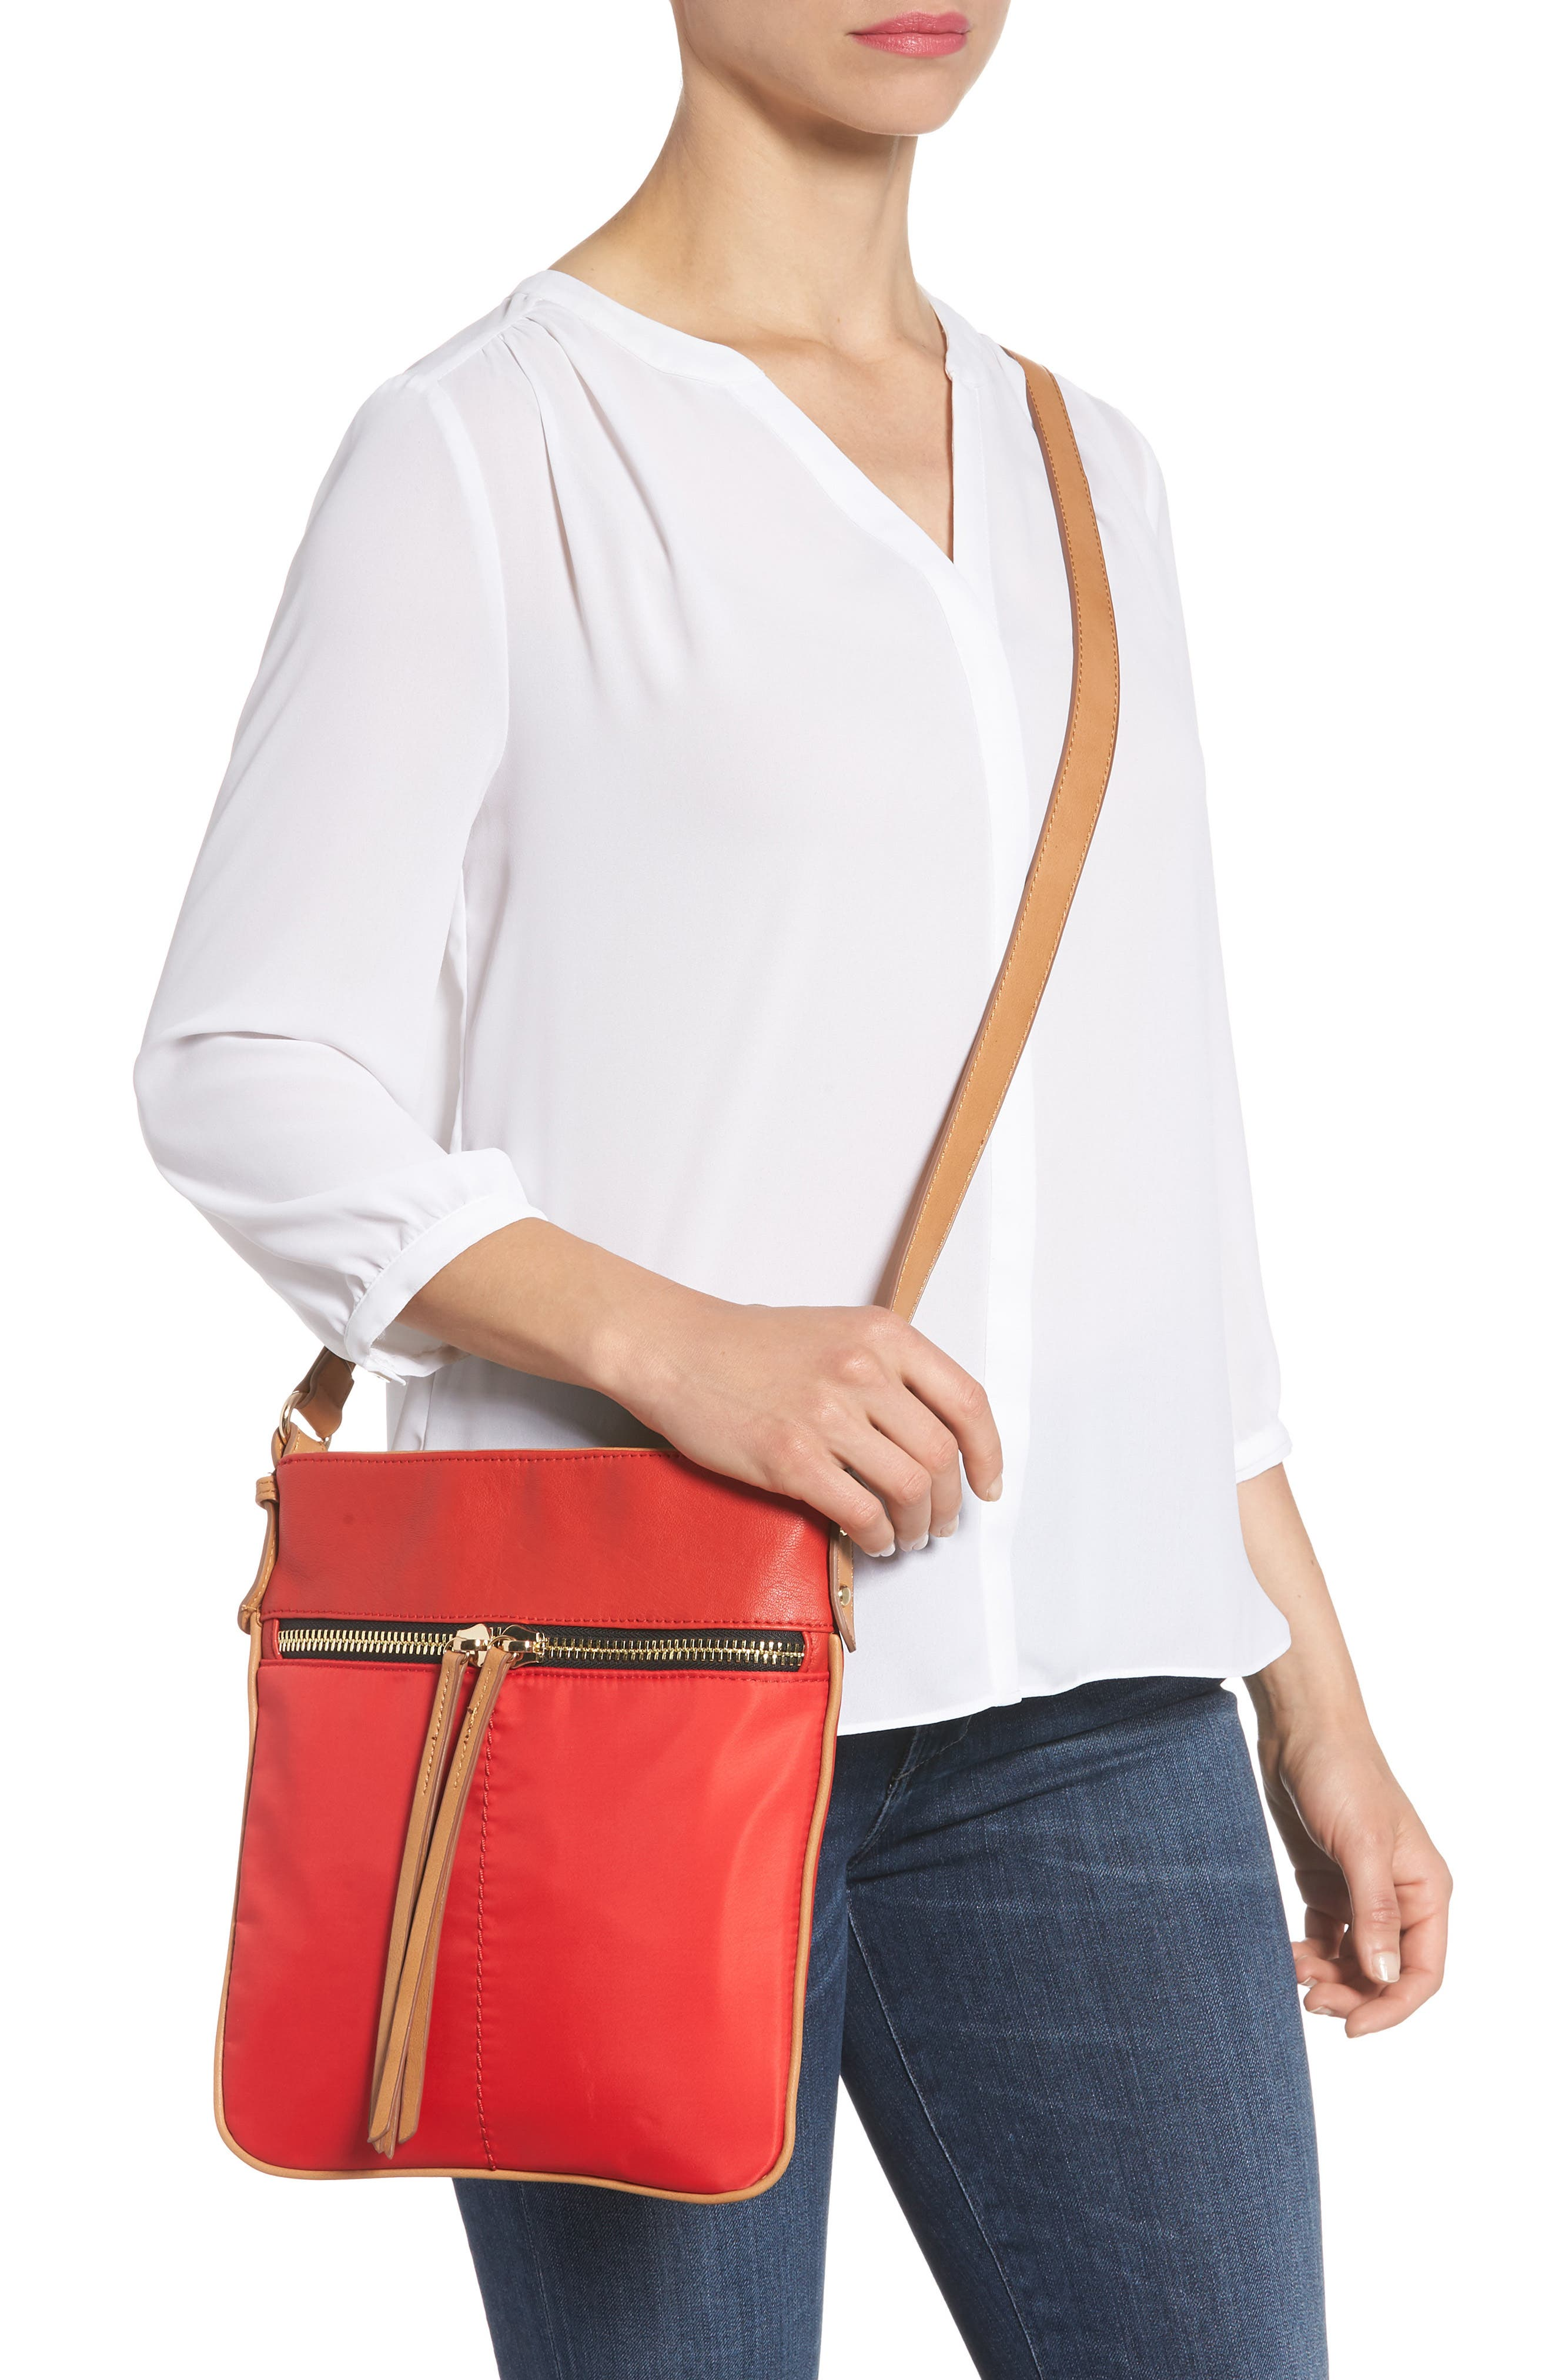 Nylon & Faux Leather Crossbody Bag,                             Alternate thumbnail 2, color,                             Red